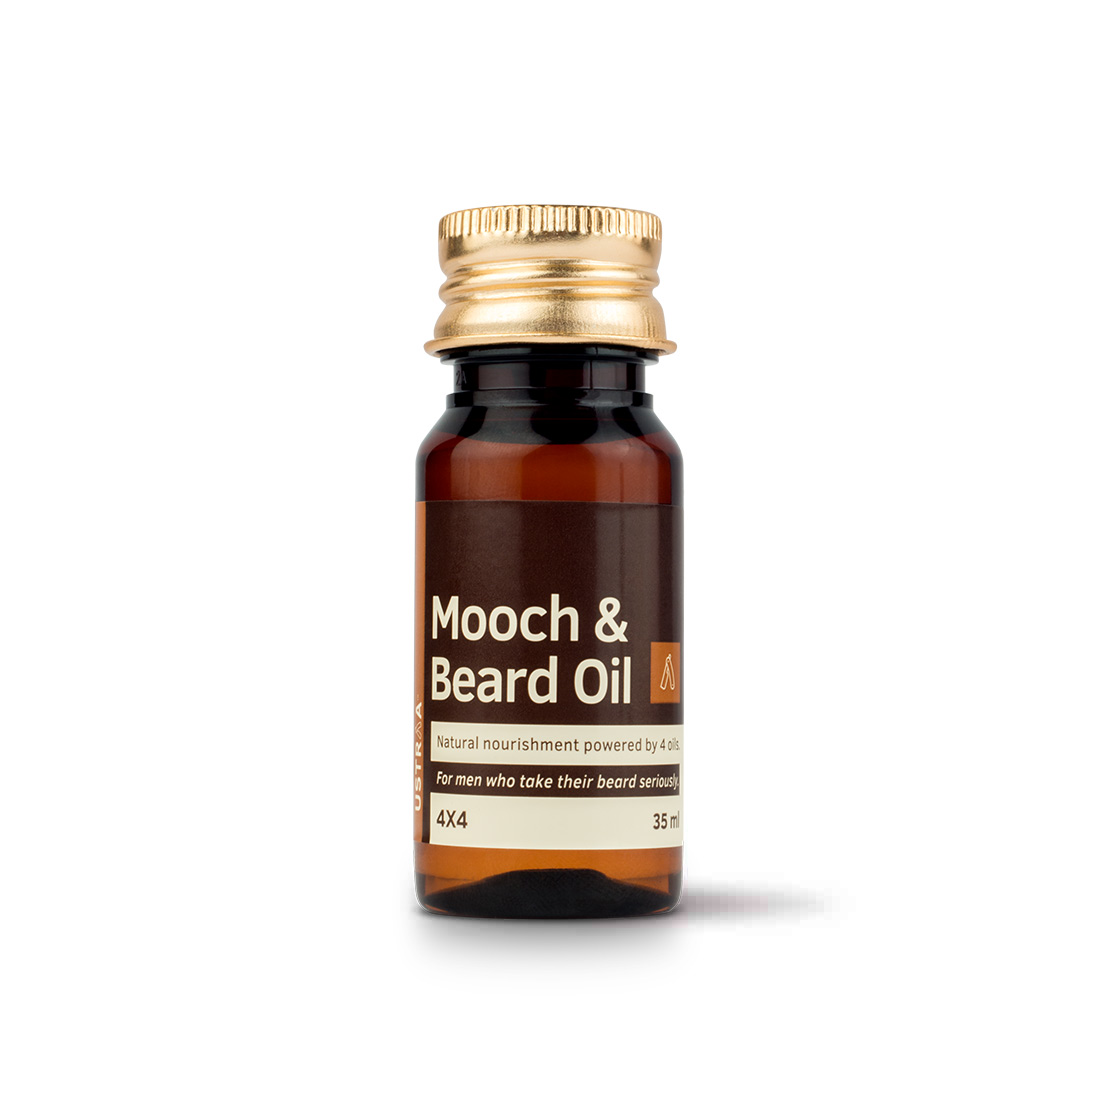 Beard & Mooch Oil 4x4